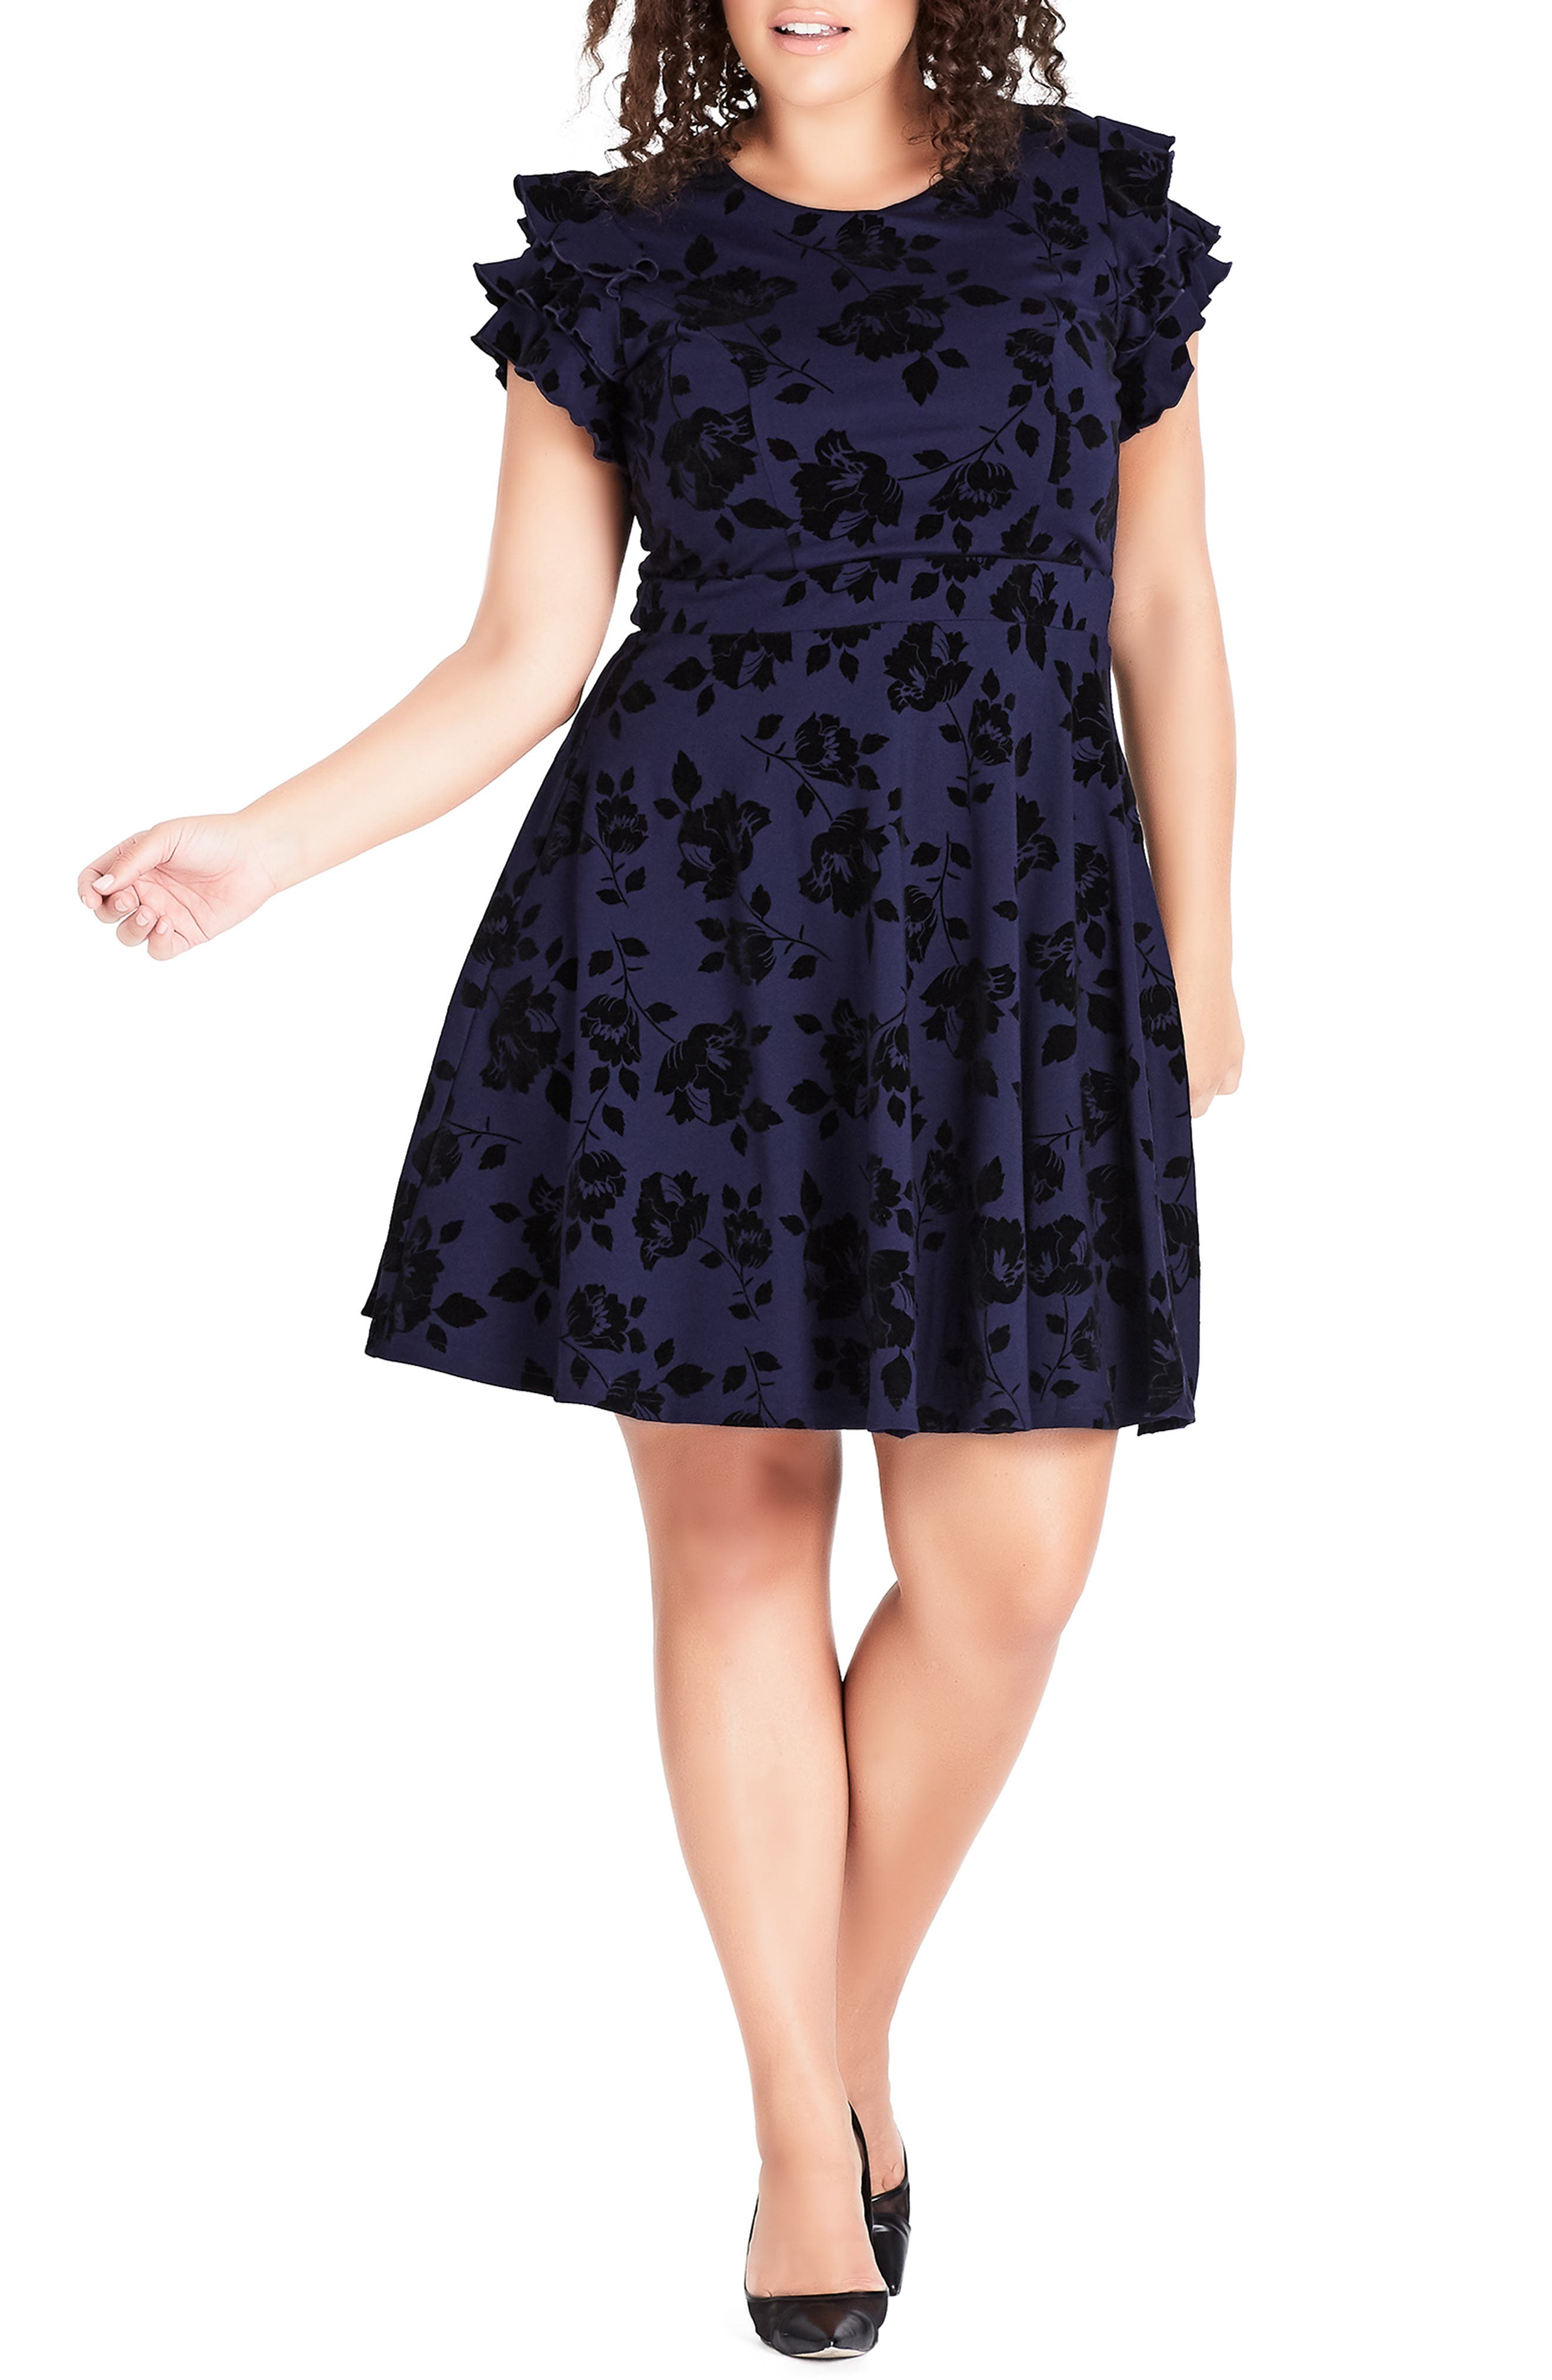 Plus Size City Chic Flock Frill Fit & Flare Dress